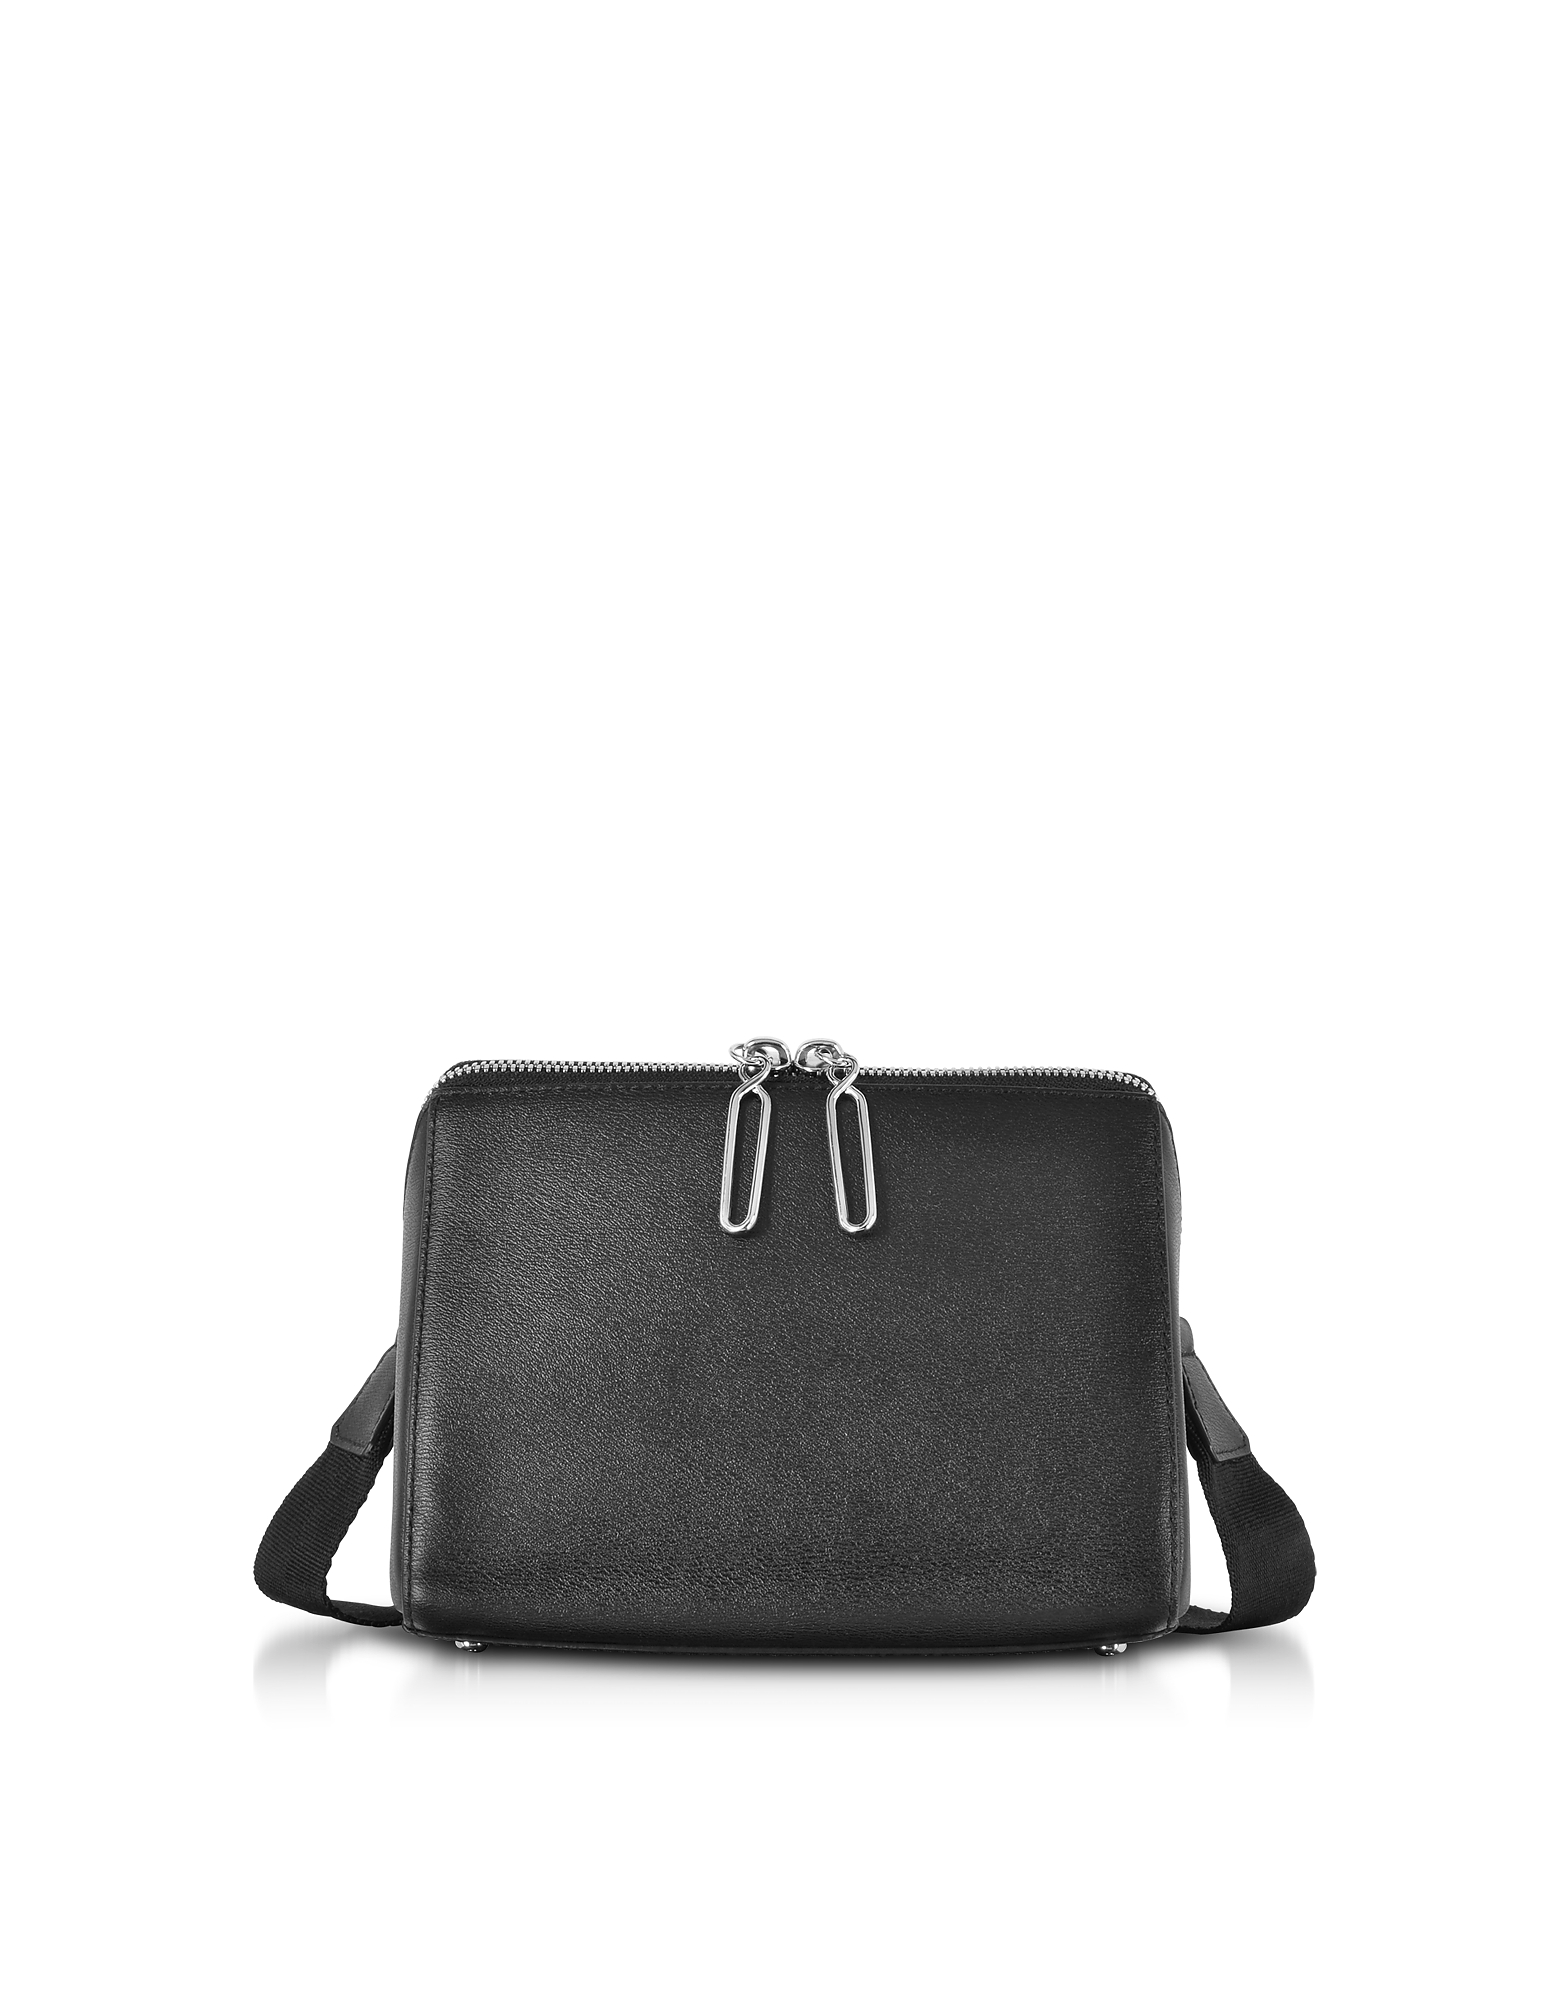 Image of 3.1 Phillip Lim Designer Handbags, Black Leather Ray Triangle Crossbody Bag